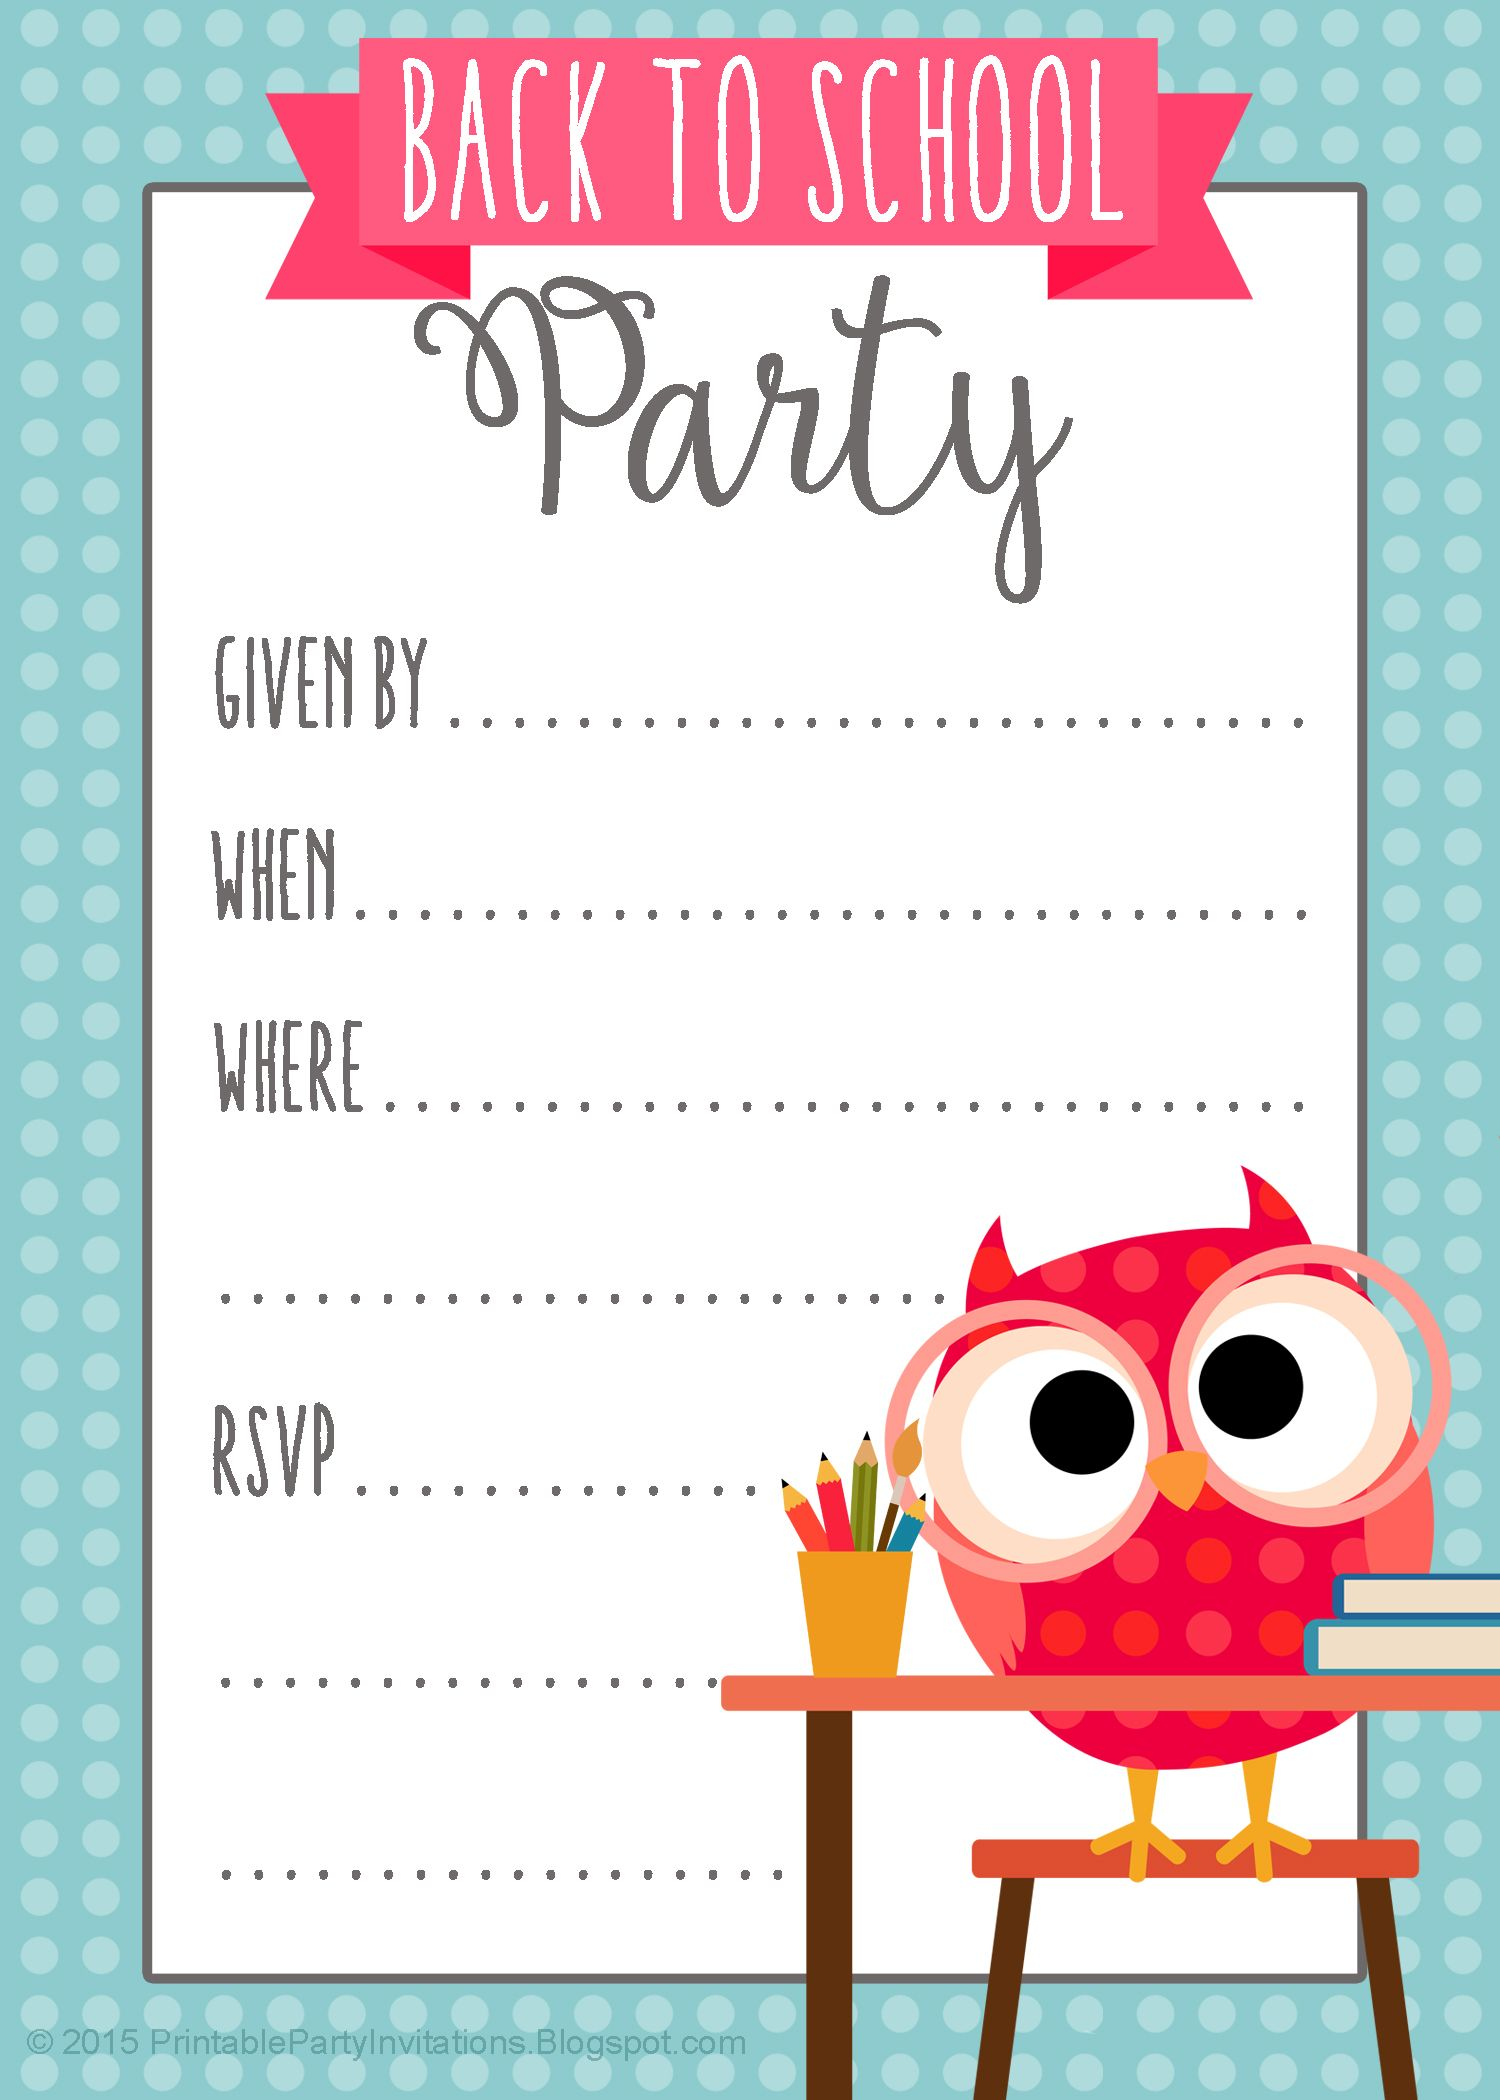 free printable back to school party invitation party printables pinterest school parties. Black Bedroom Furniture Sets. Home Design Ideas